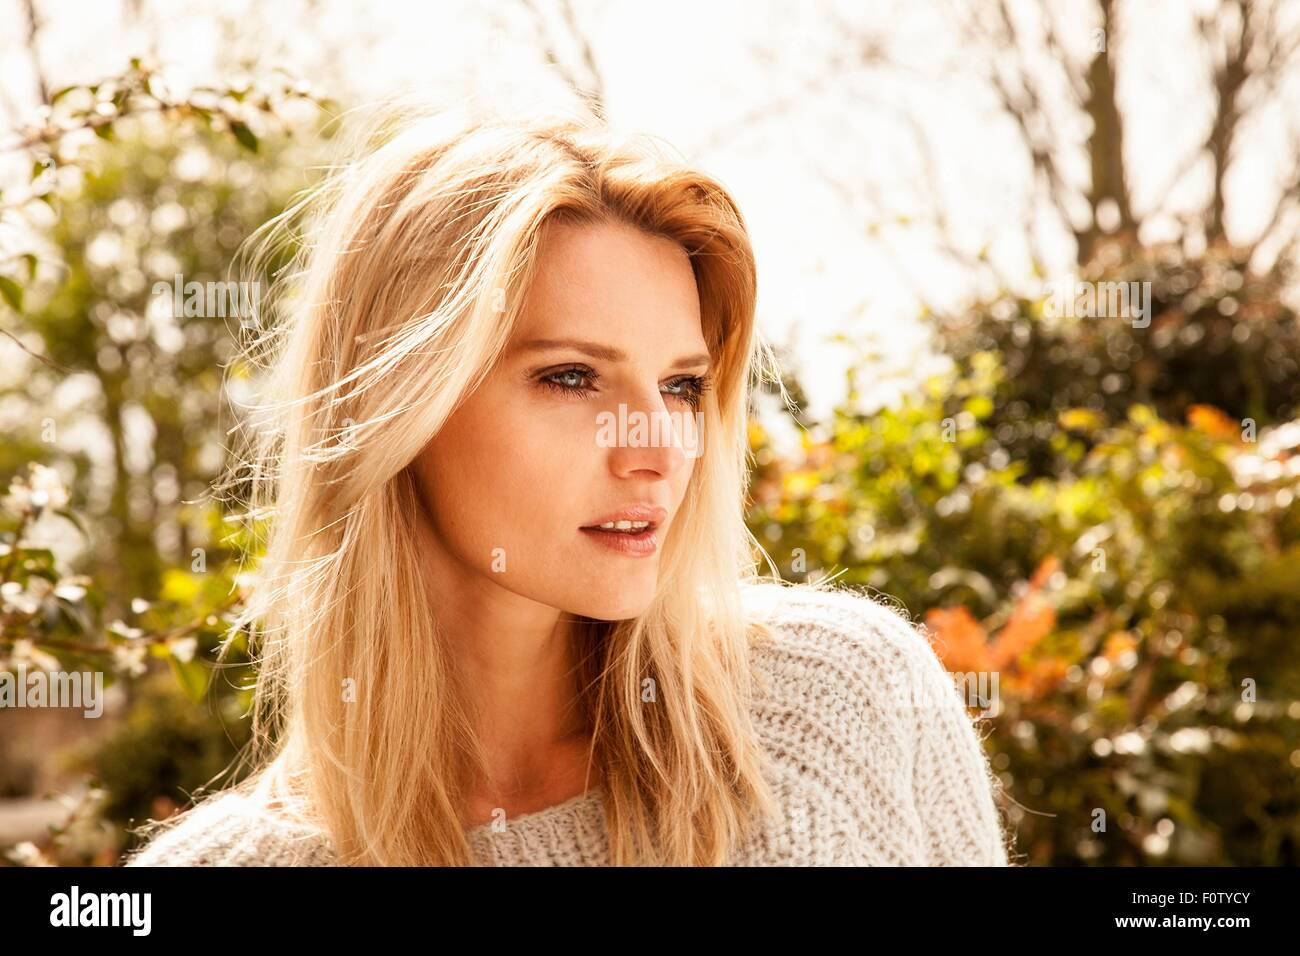 Beautiful mid adult woman with long blond hair in garden - Stock Image